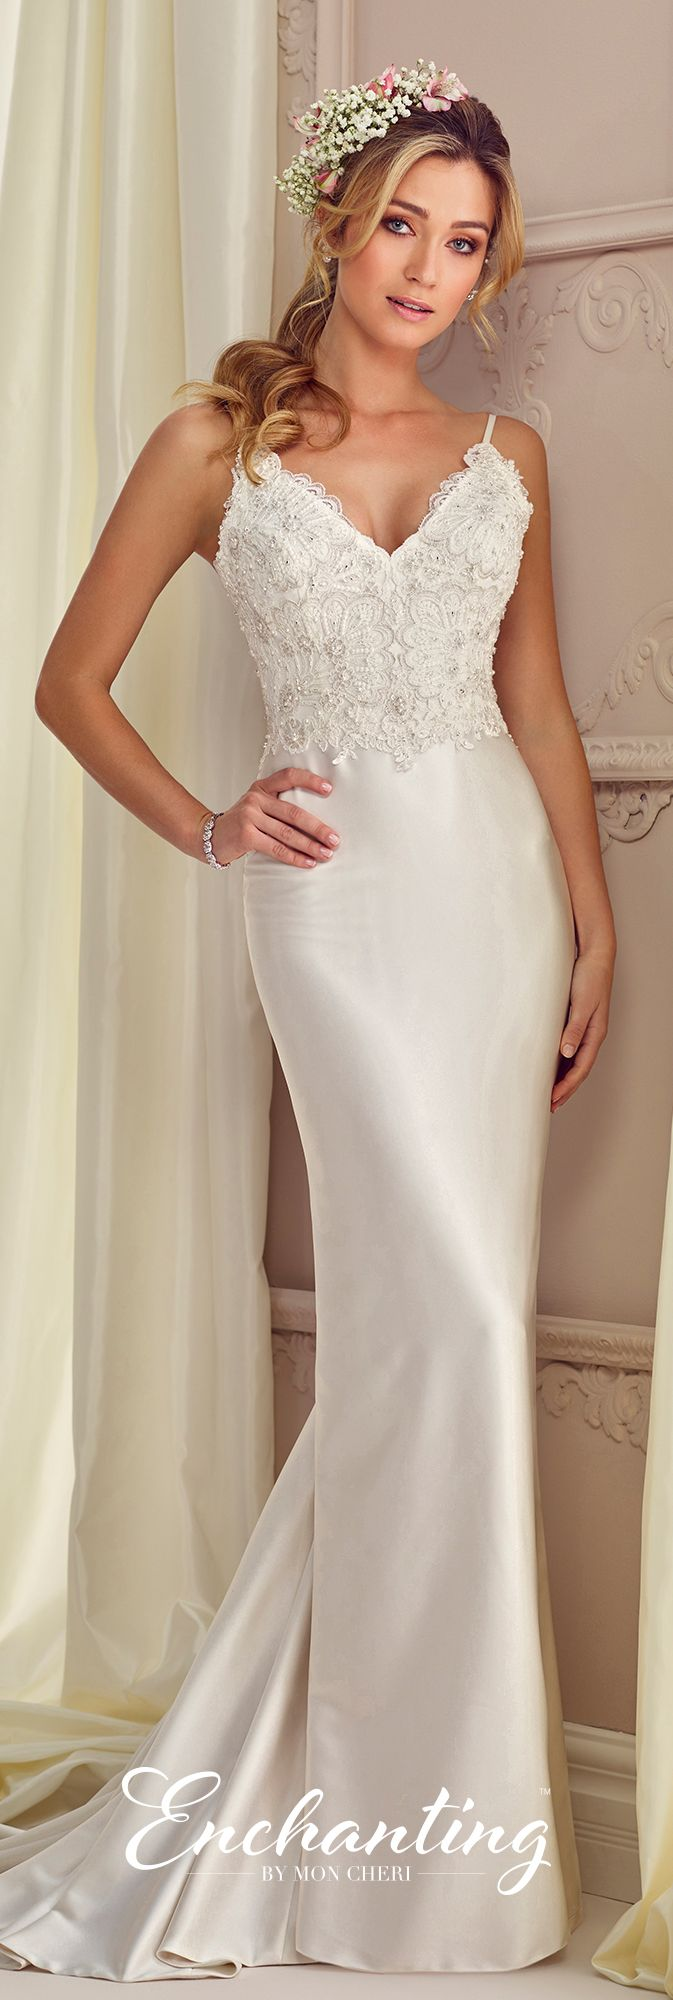 Dipped wedding dress    Enchanted Illusions and Dips